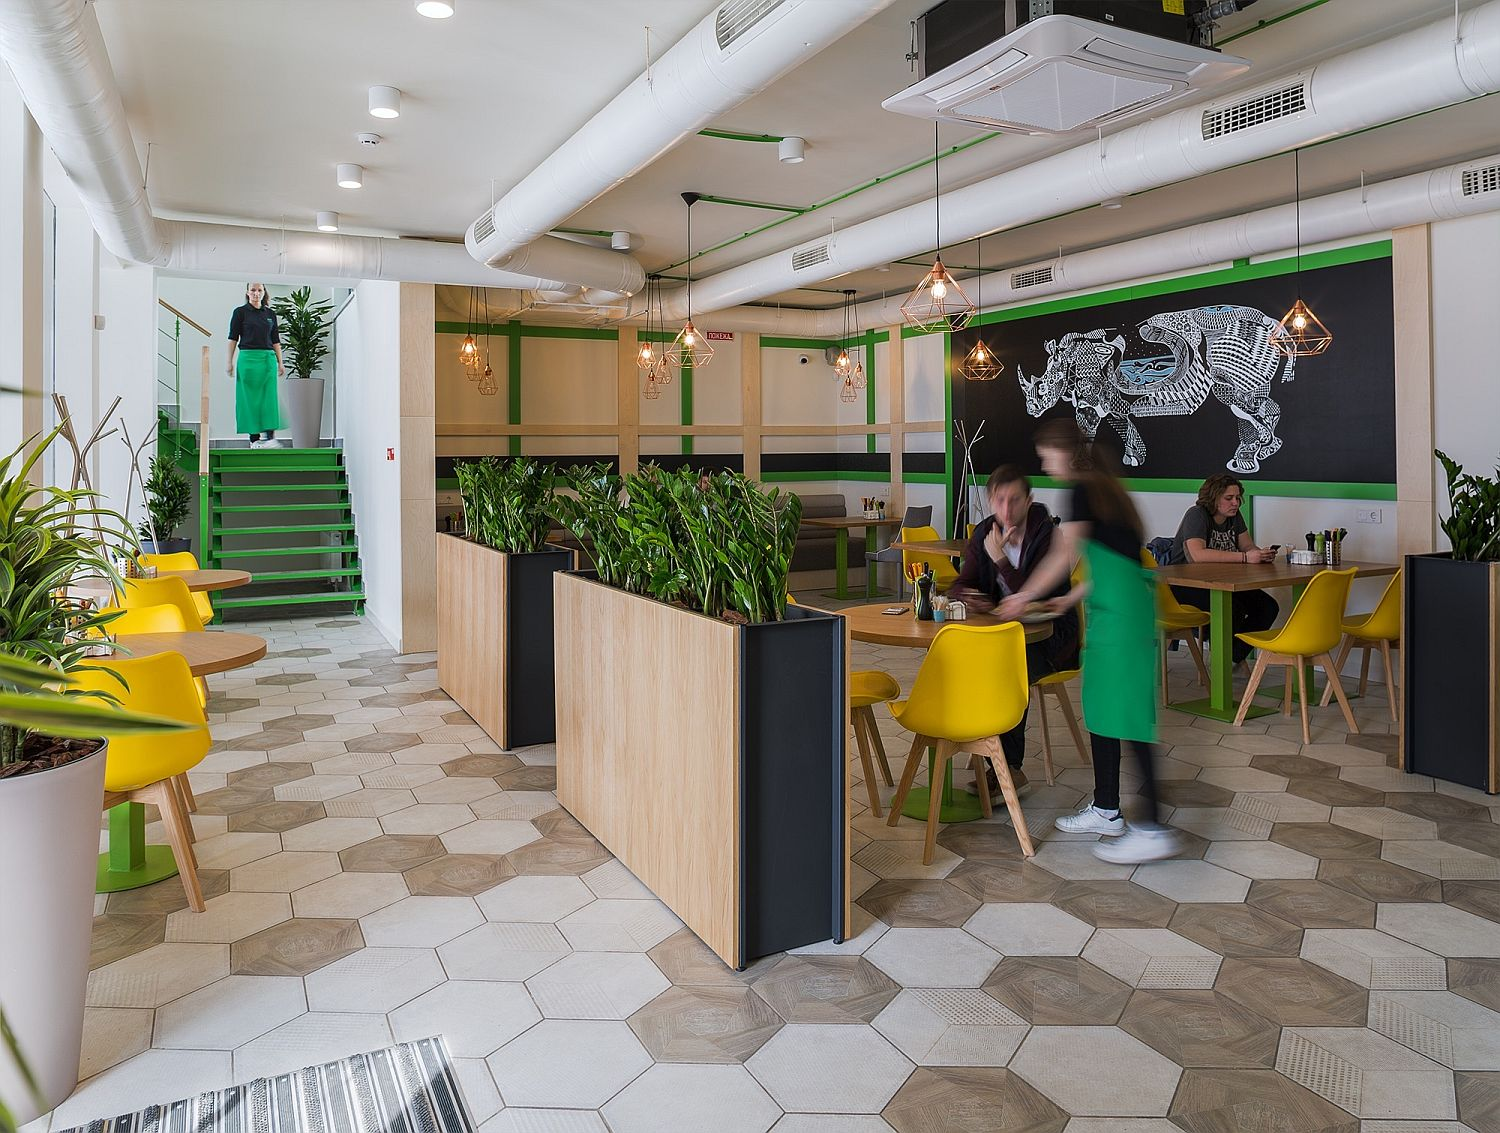 Shipping container cafe in Kiev with polished interior